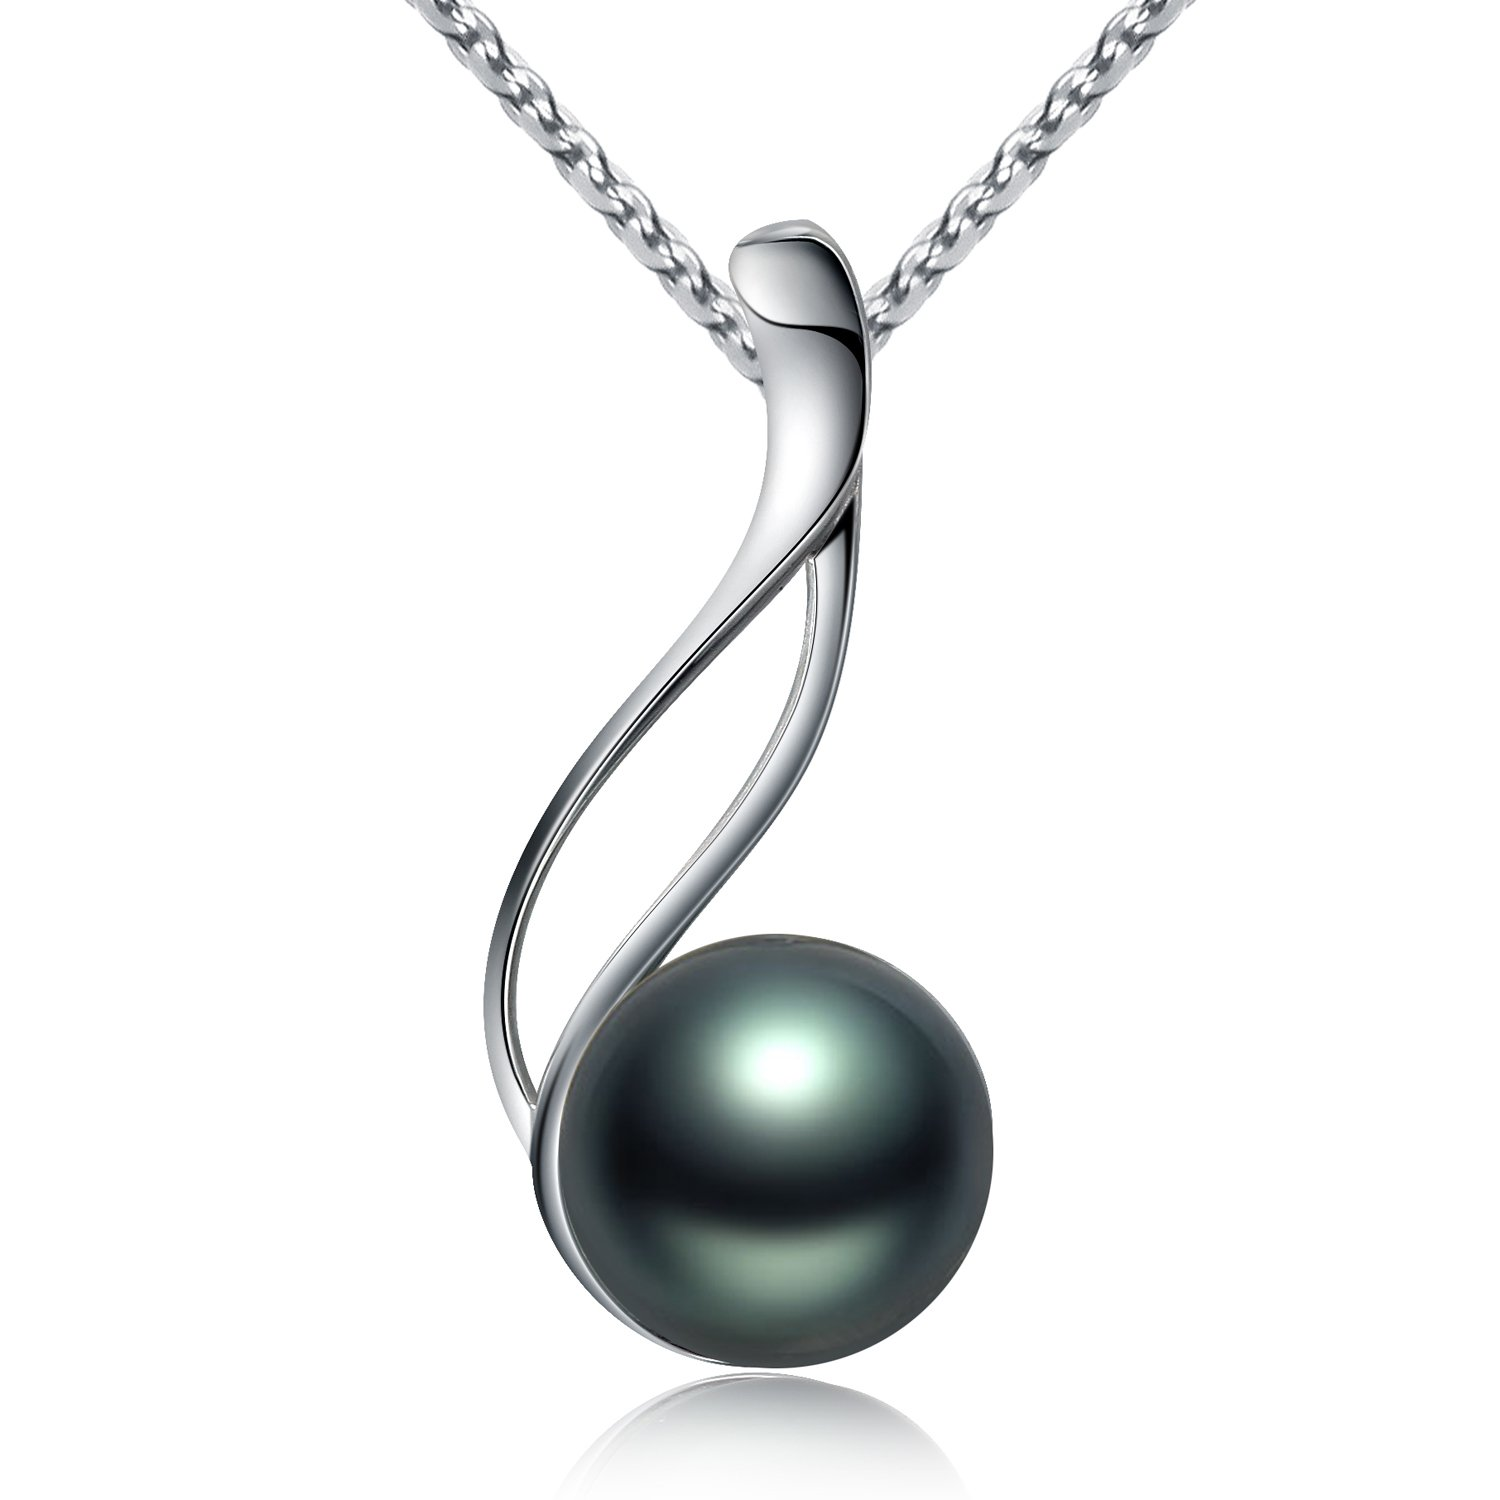 Amazon tahitian cultured black pearl pendant necklace 9 10mm amazon tahitian cultured black pearl pendant necklace 9 10mm round sterling silver anniversary gifts for women viki lynn jewelry aloadofball Image collections